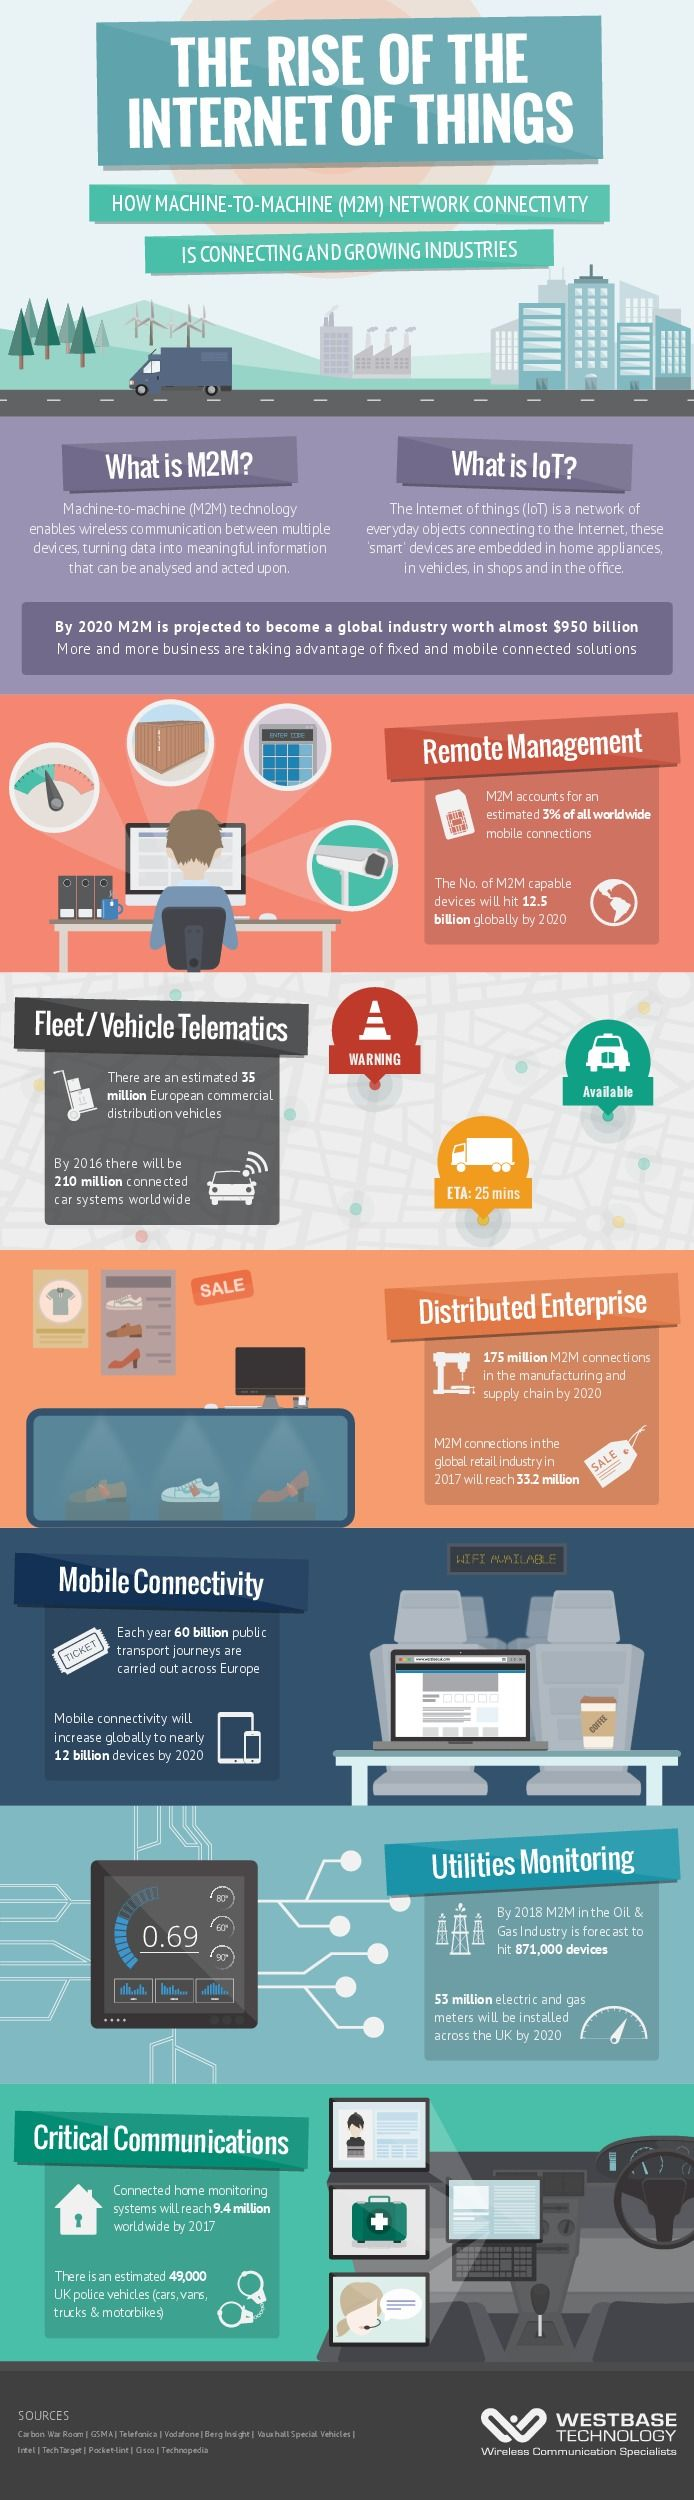 Visualistan: The Rise of the Internet of Things #infographic